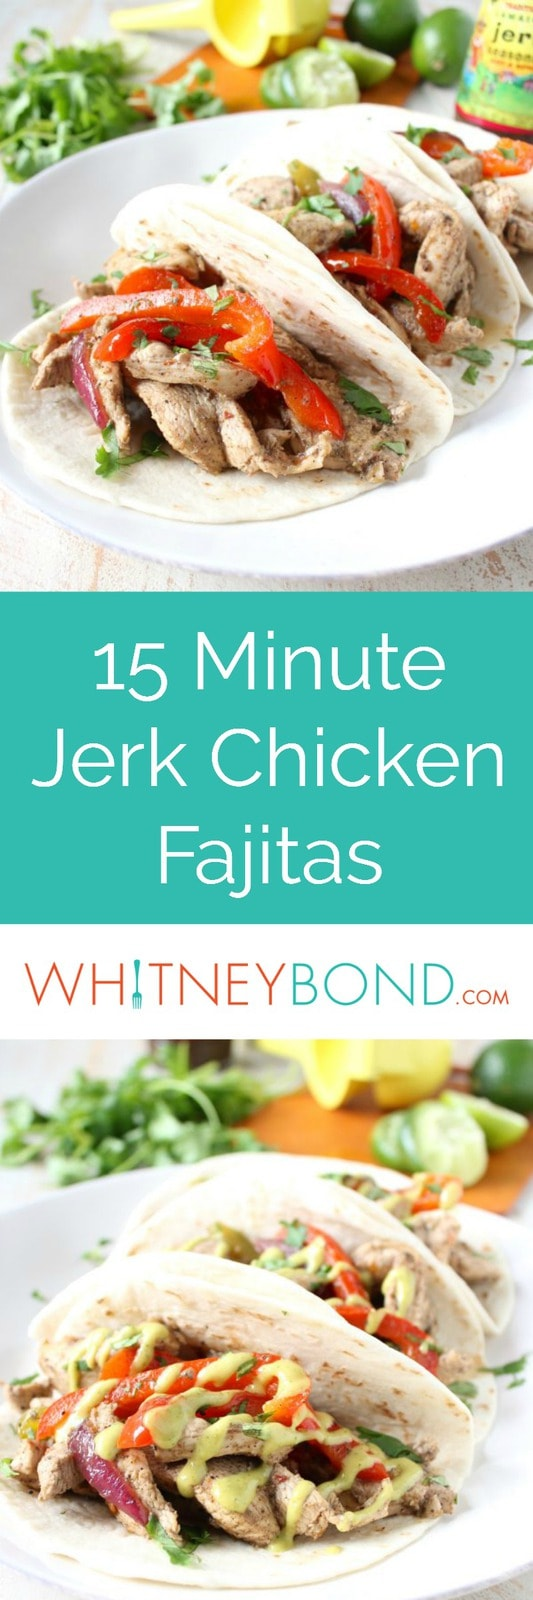 Give your chicken fajitas a taste of the Caribbean with this tasty recipe for Jerk Chicken Fajitas, made in only 15 minutes for an easy weeknight dinner!